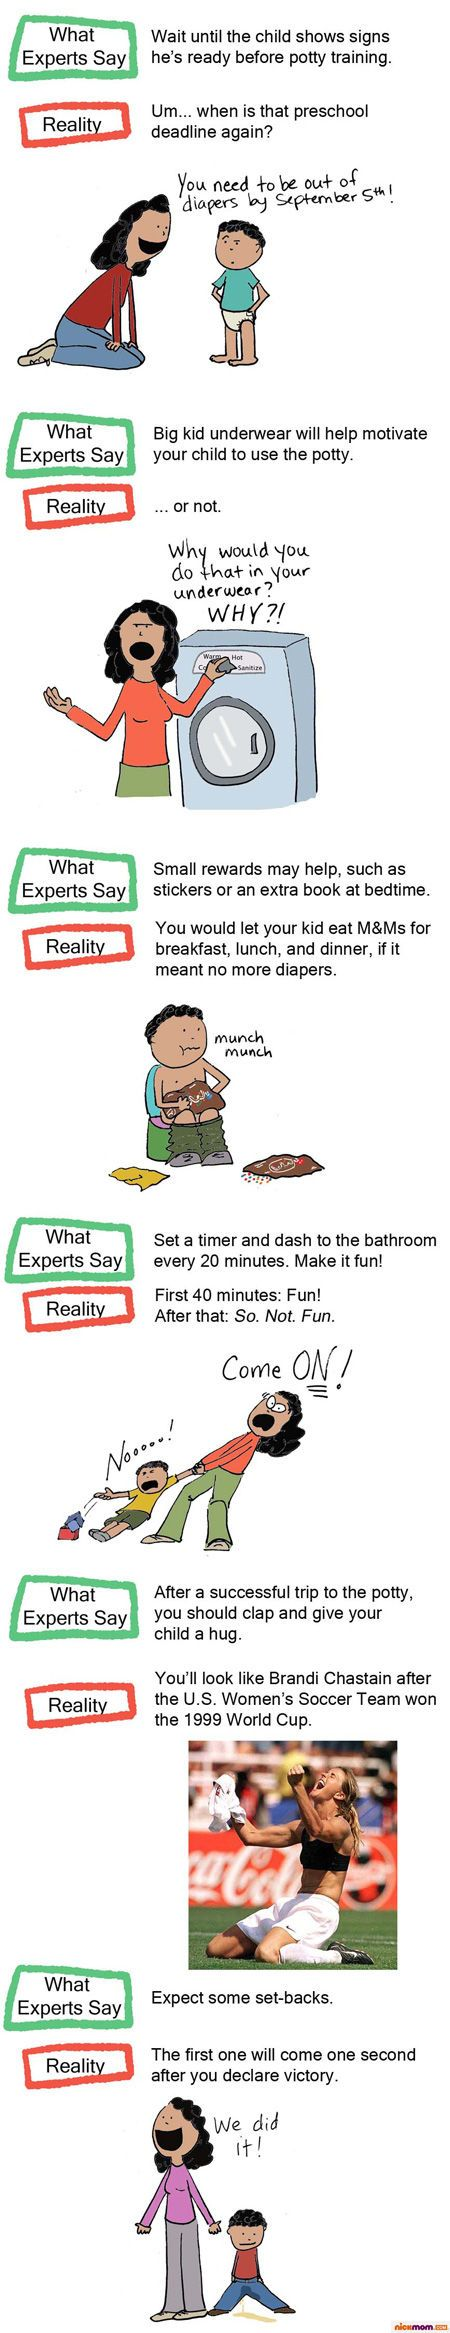 Potty Training: What the Experts Say vs. What Actually Happens in Real Life   More LOLs  Funny Stuff for Moms   NickMom